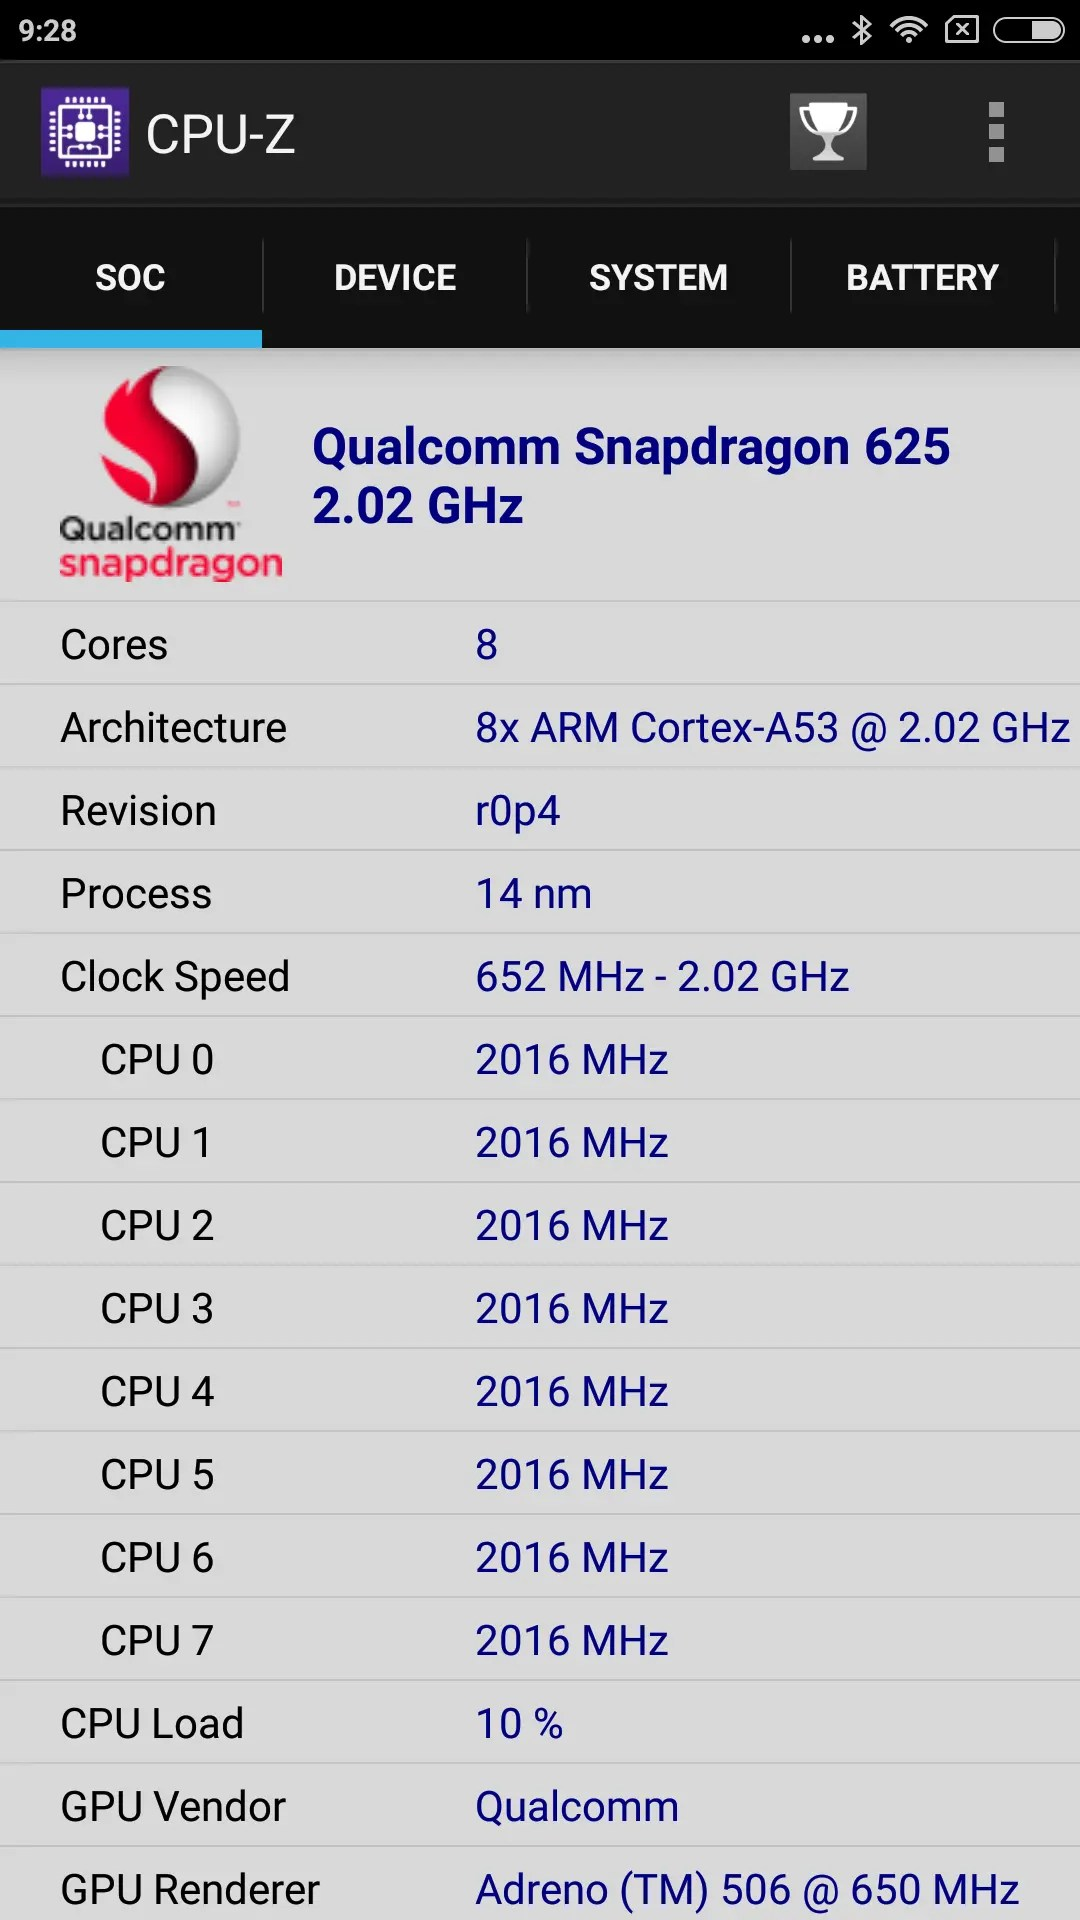 Xiaomi Redmi Note 4X CPU-Z SOC